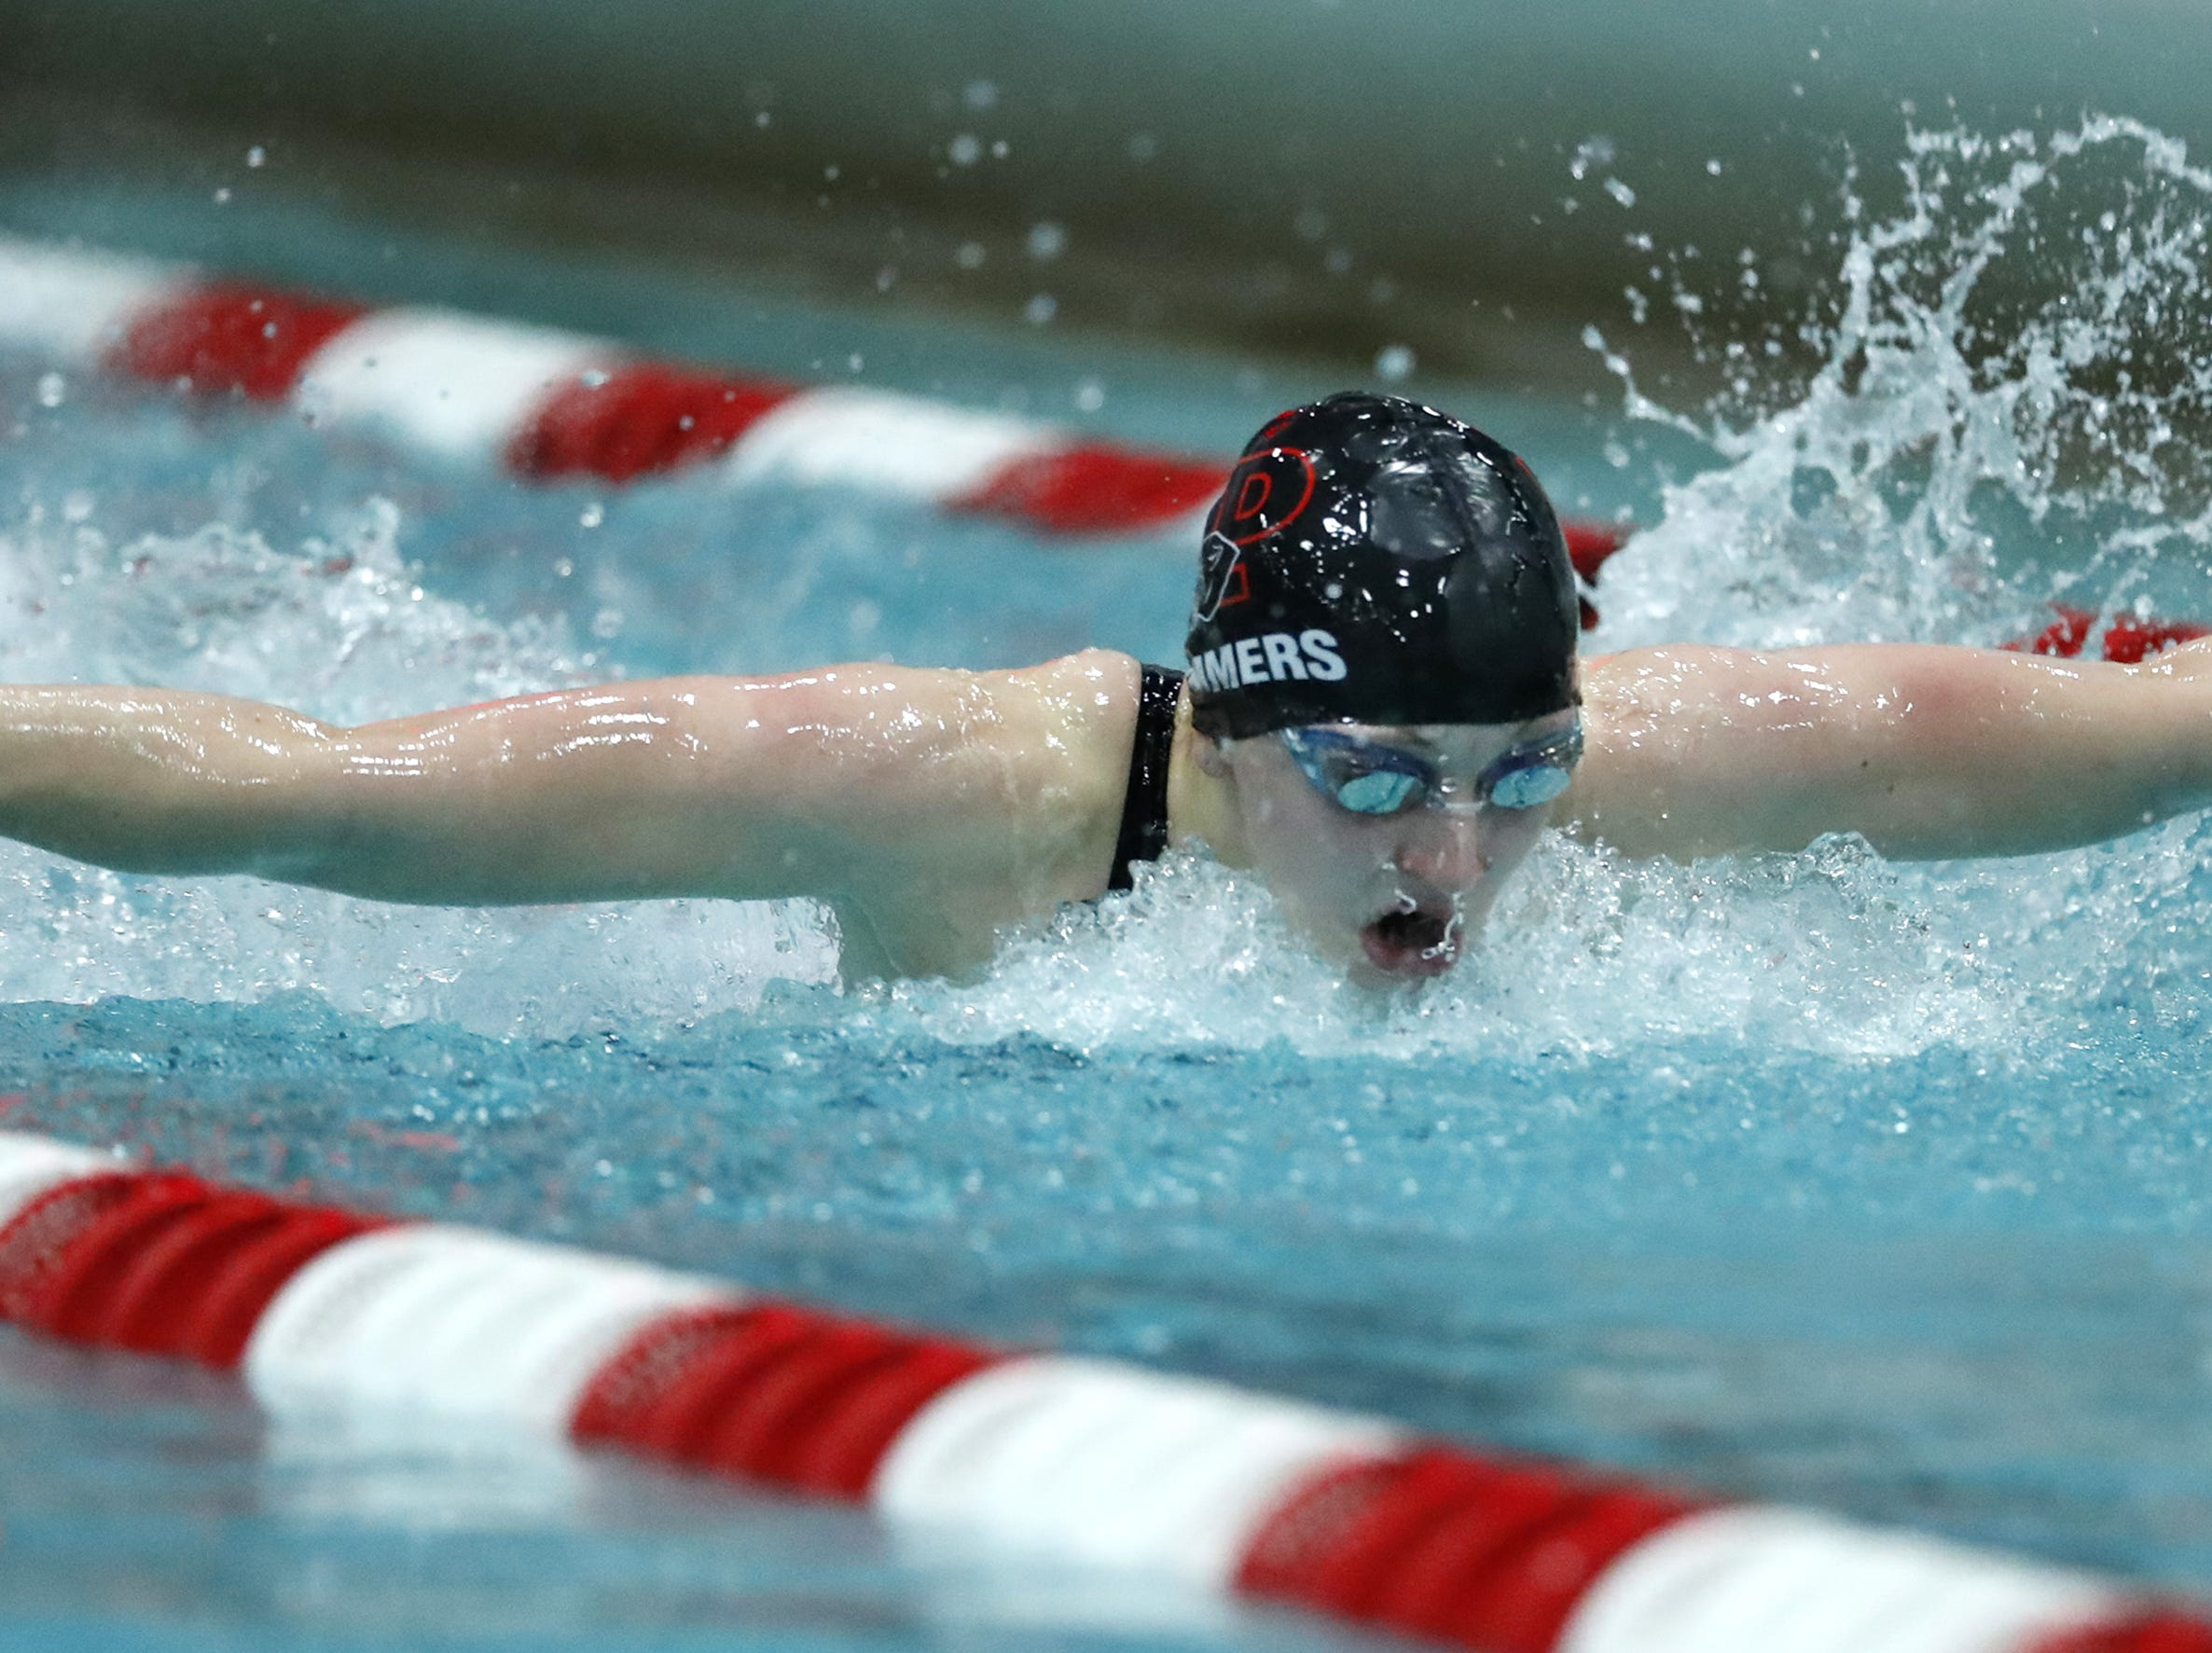 Stevens PointÕs Casey Summers races in the 100 yard butterfly during the WIAA Division 1 State Swimming and Diving meet Saturday, Nov. 10, 2018, at the UW Natatorium in Madison, Wis. Danny Damiani/USA TODAY NETWORK-Wisconsin